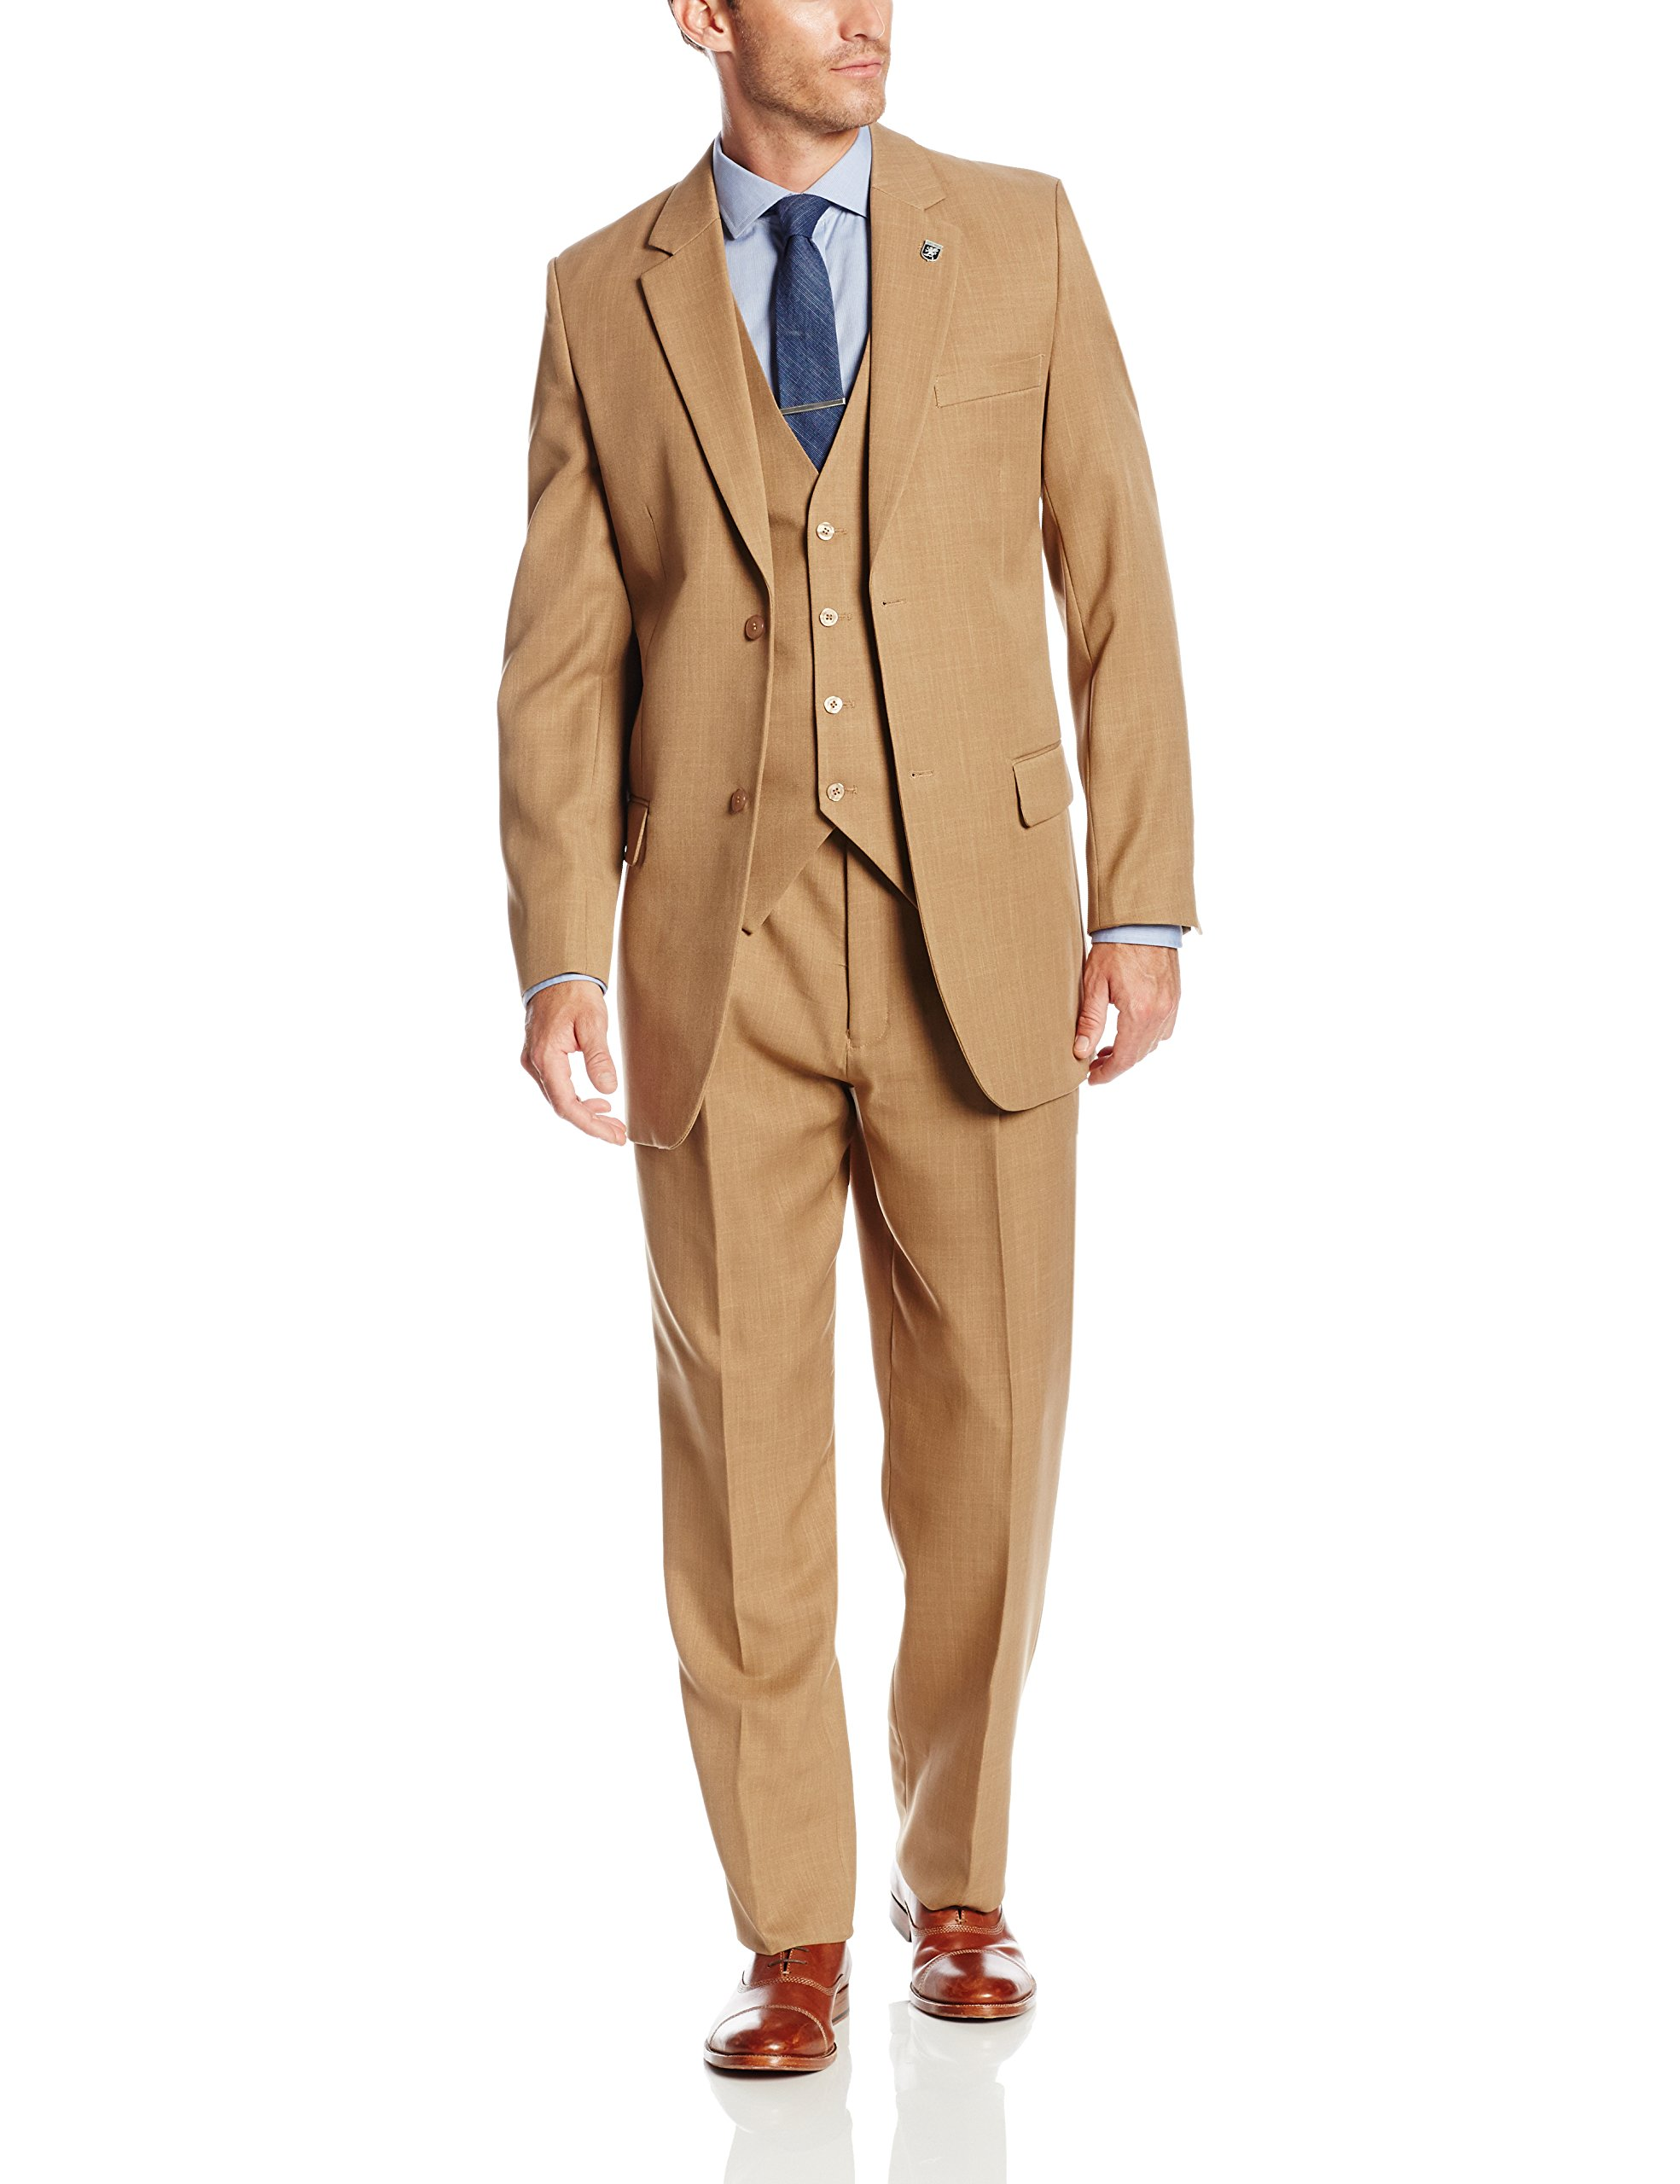 Stacy Adams Men's Suny Vested 3 Piece Suit, Tan, 42 Long